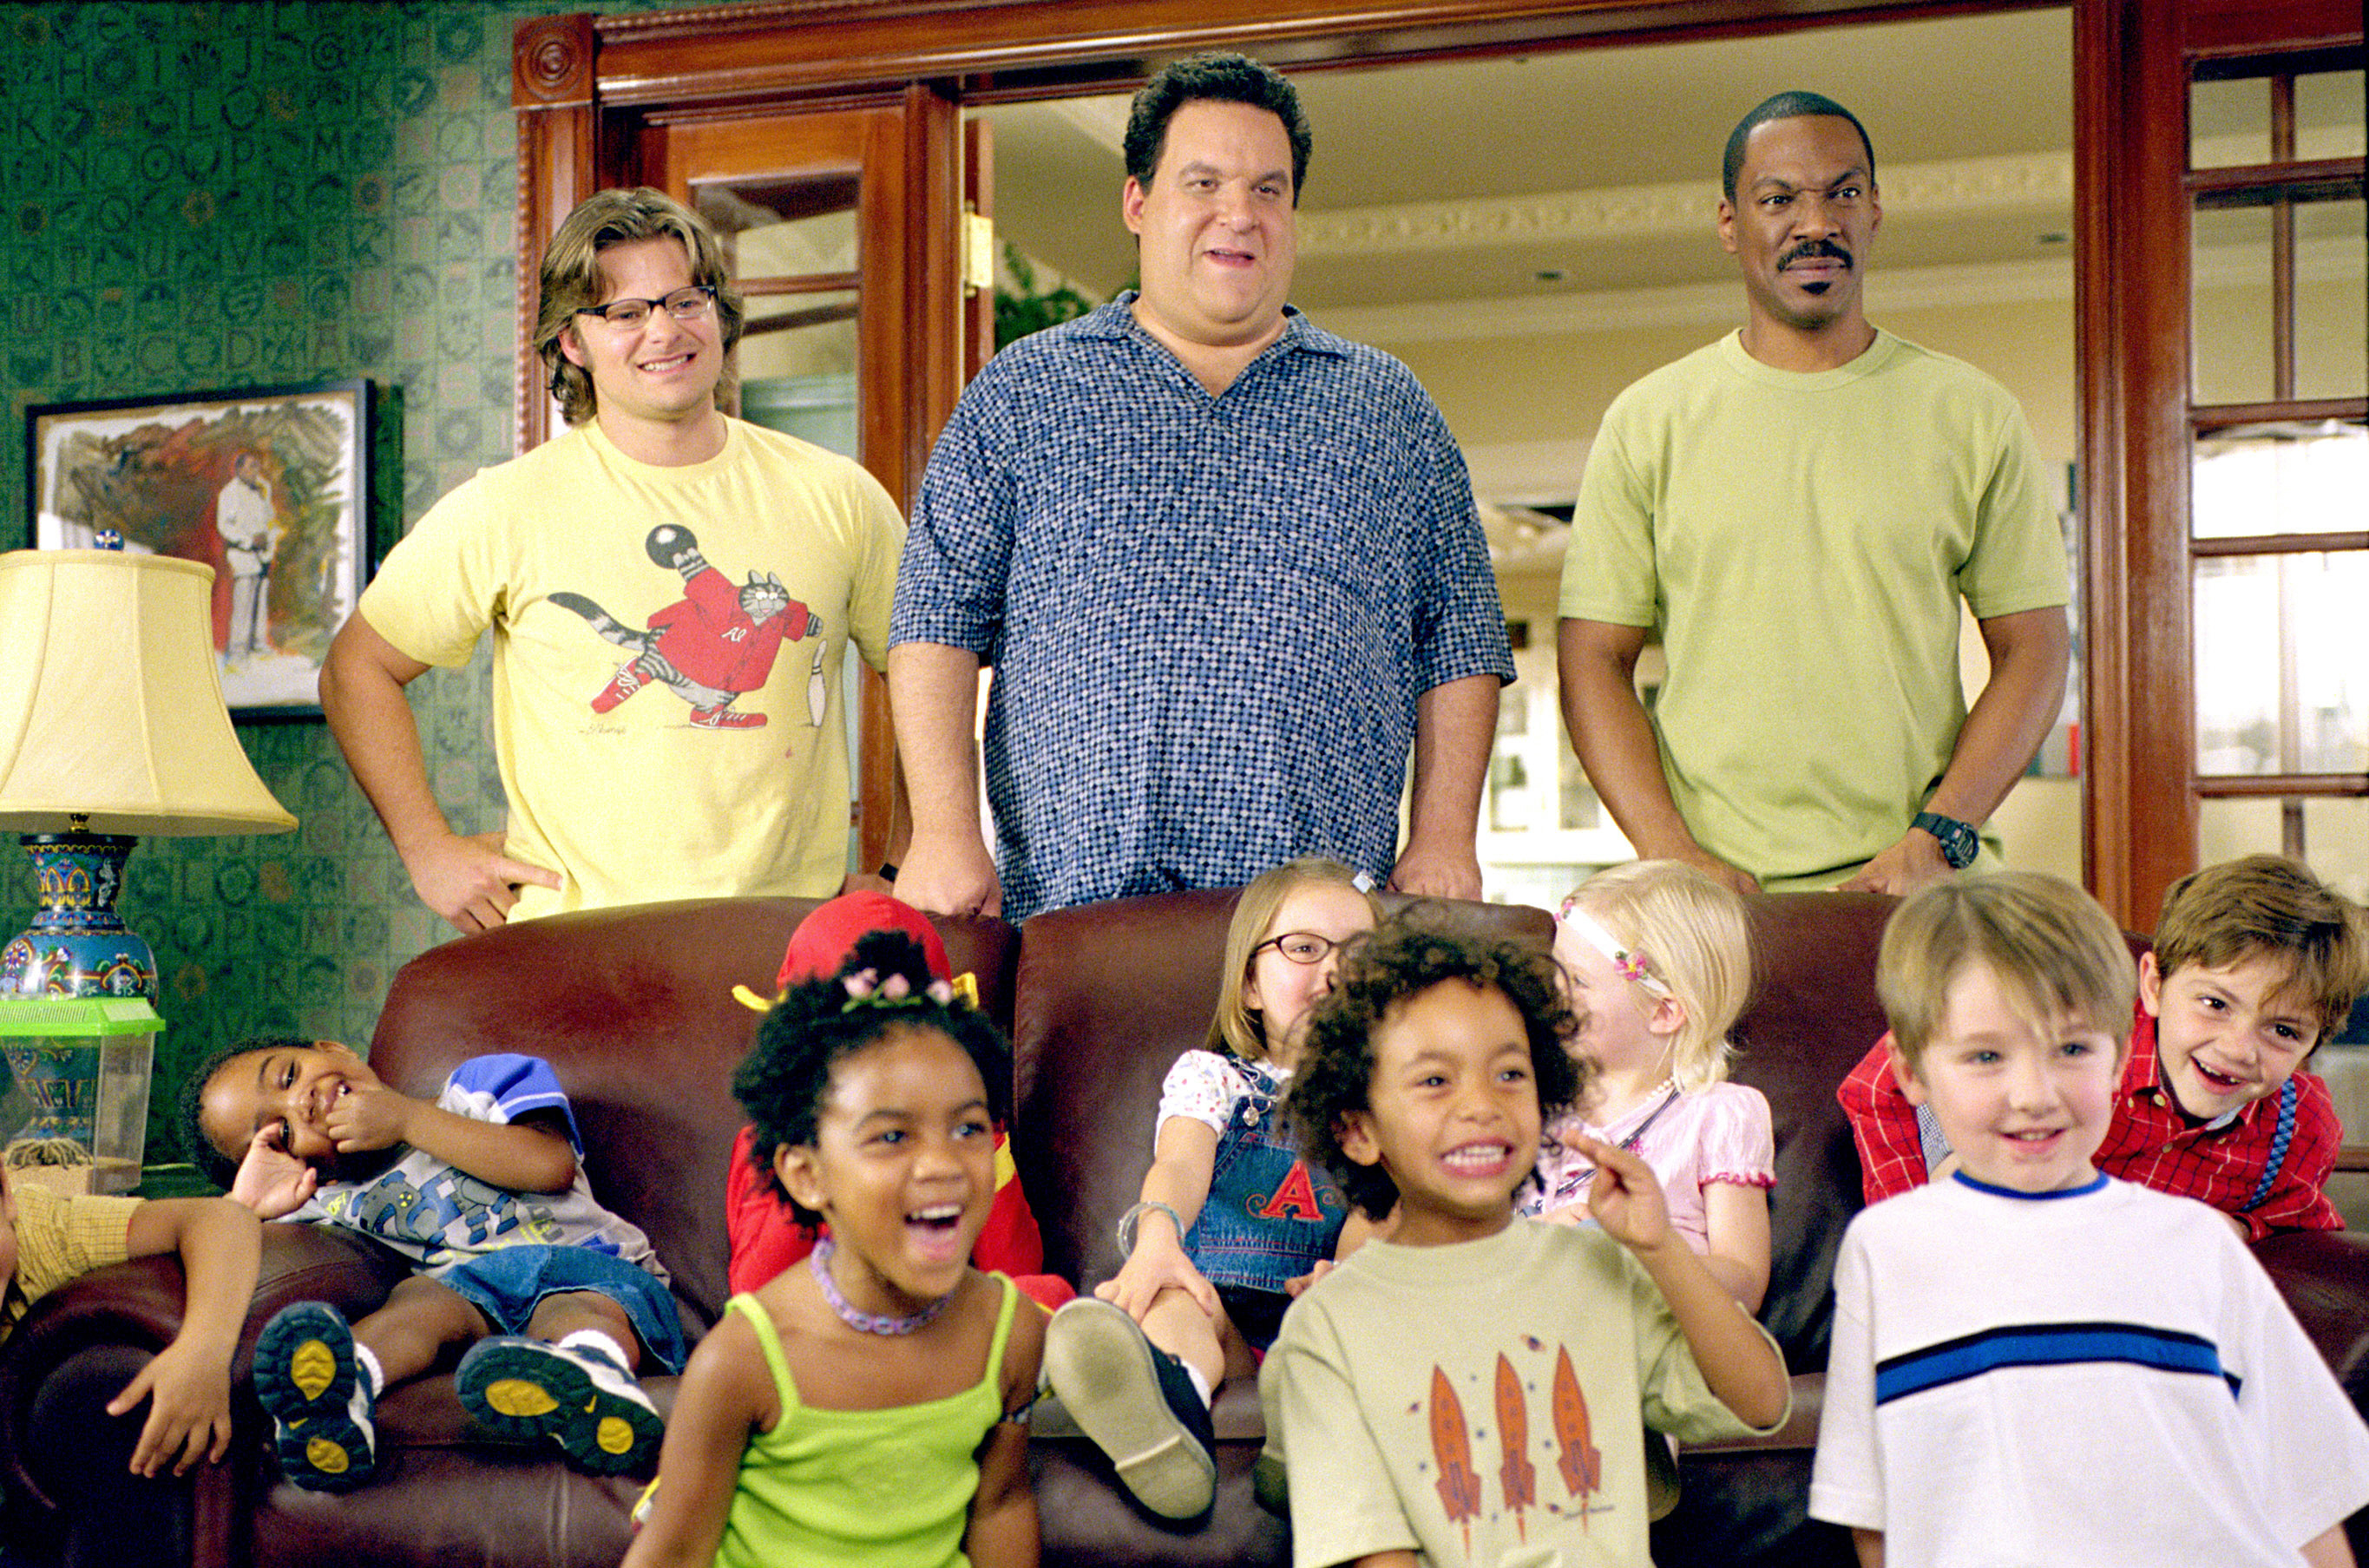 Steve Zahn, Jeff Garlin, and Eddie Murphy stand in front of a couch full of kids